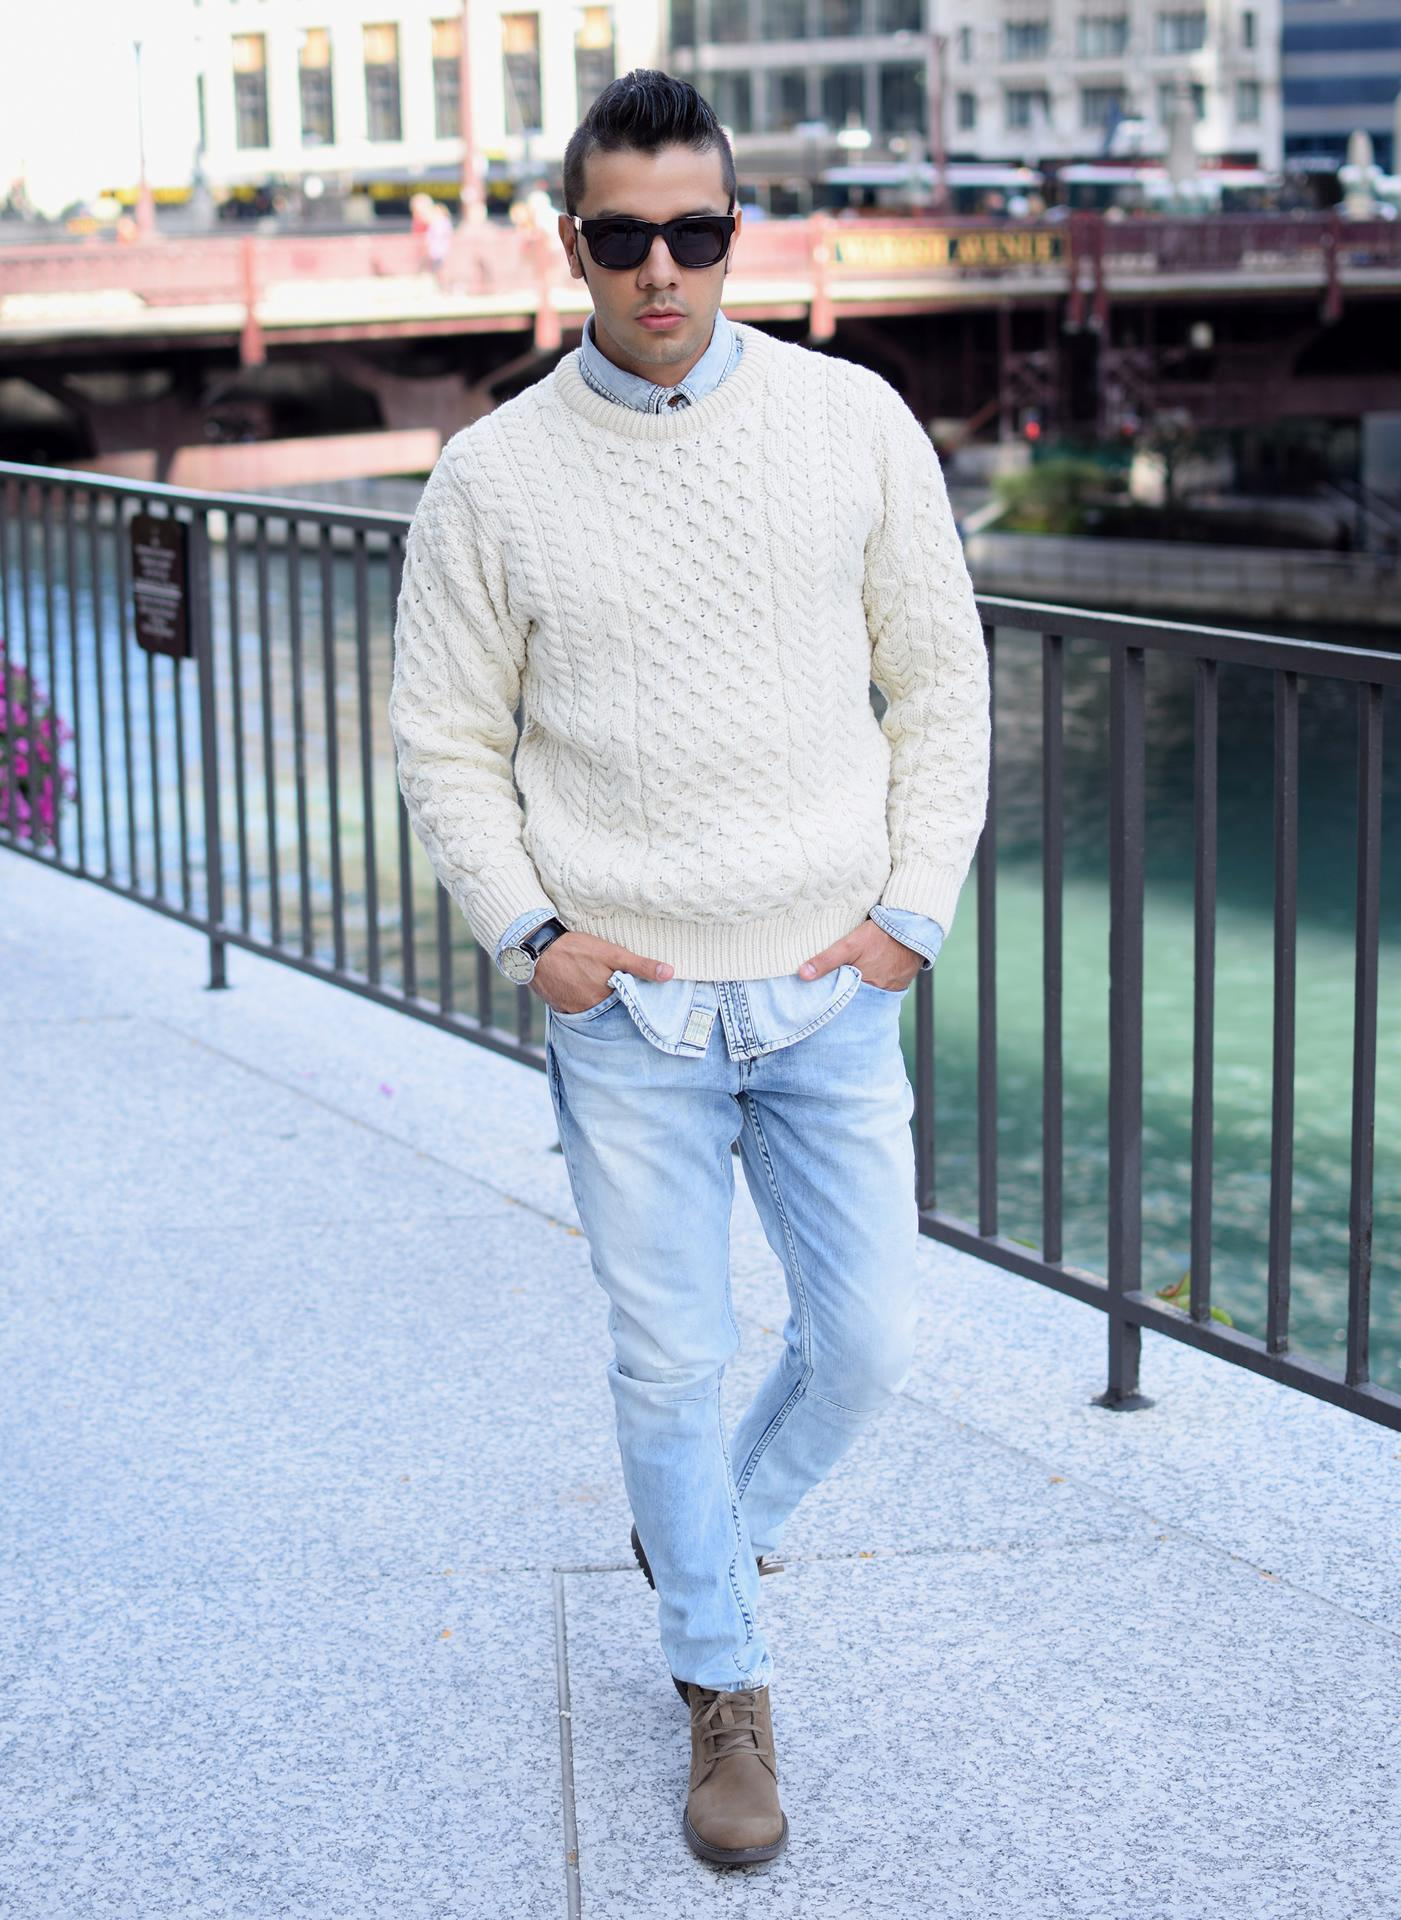 to wear - Blue Light jeans men fashion pictures video